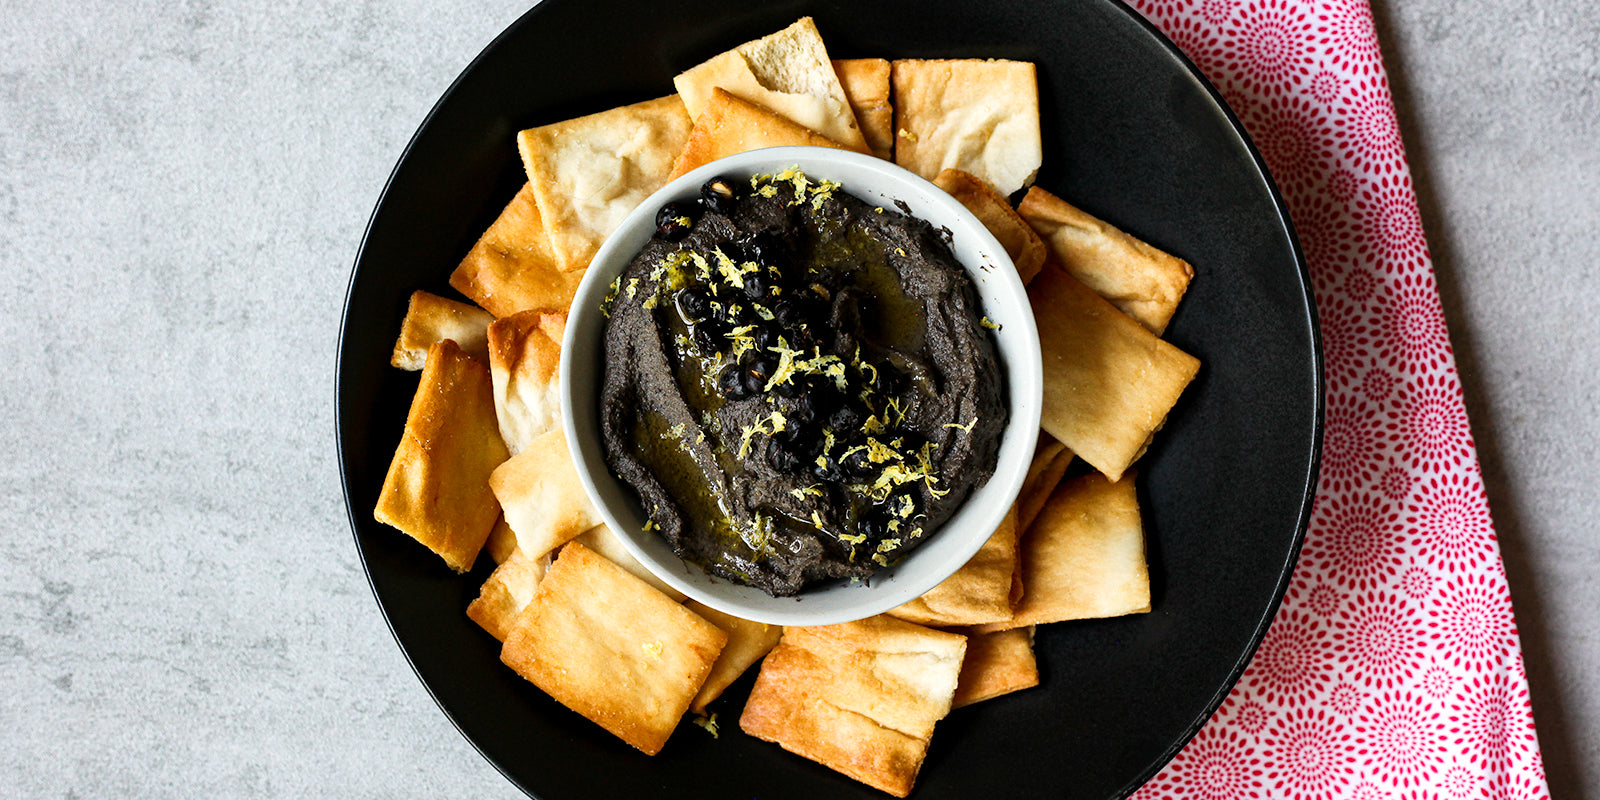 Hummus Noir with Black Garbanzo Beans